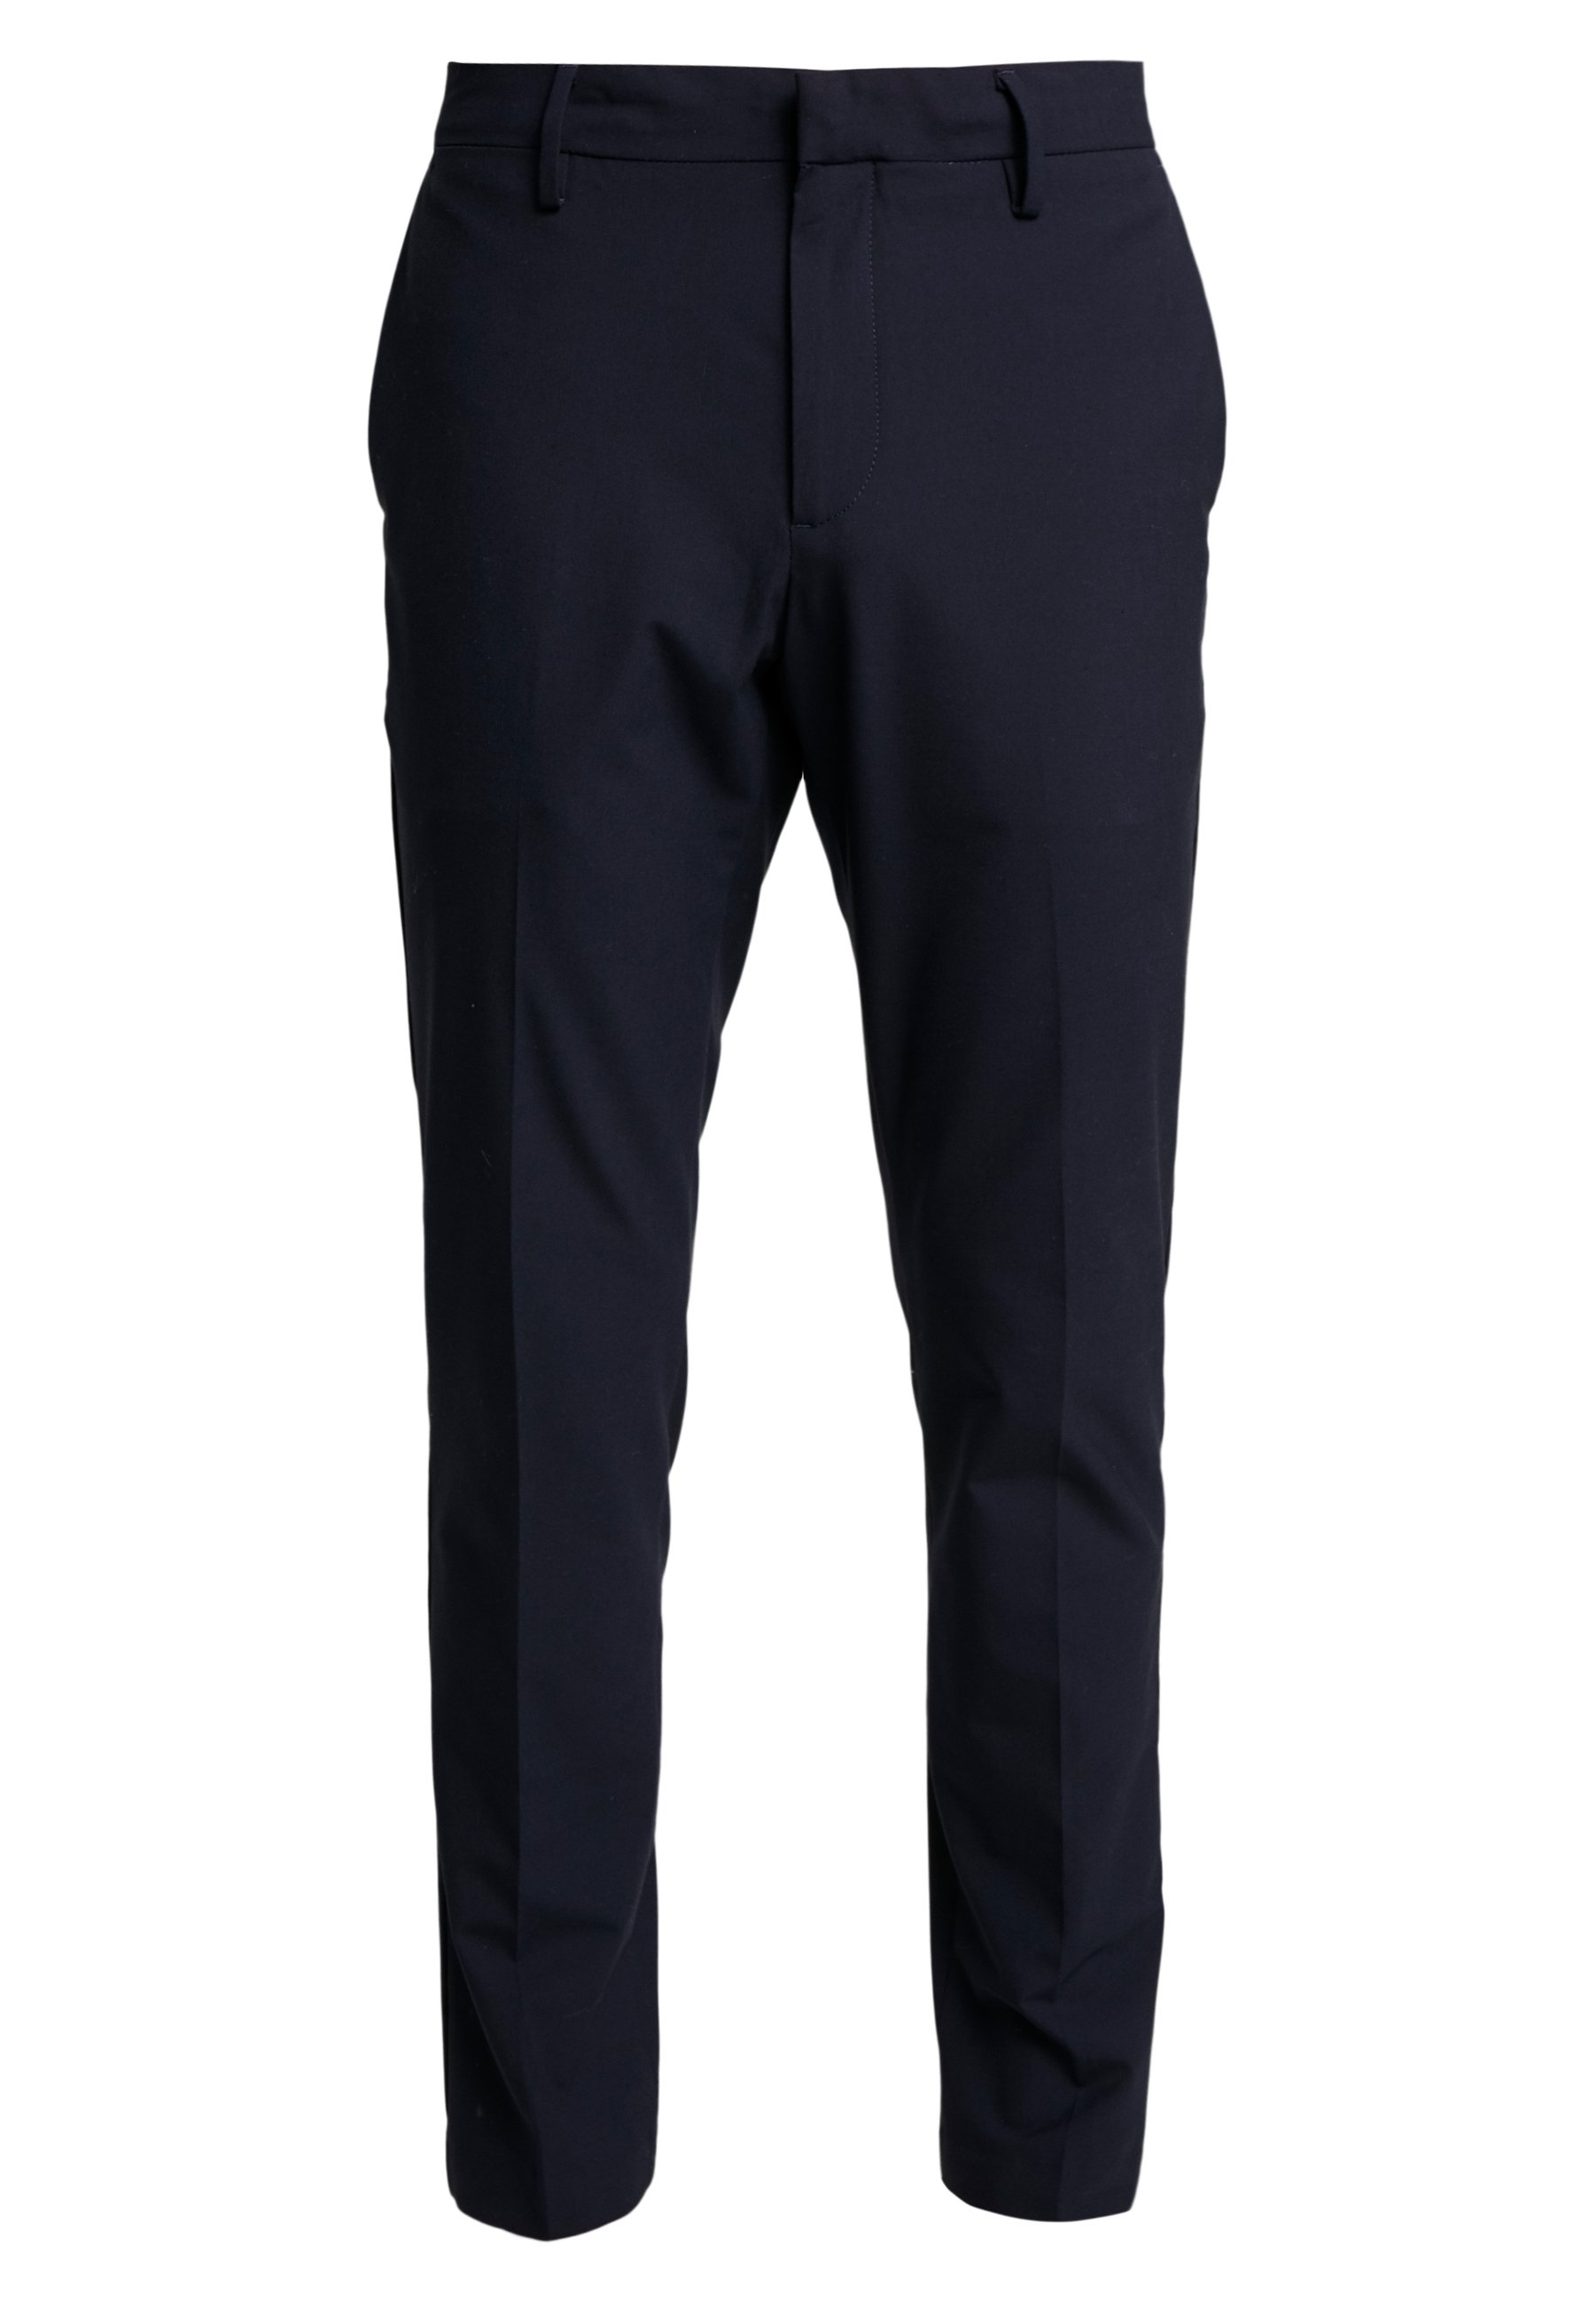 Dockers Smart 360 Flex Trouser Slim - Chinos Navy